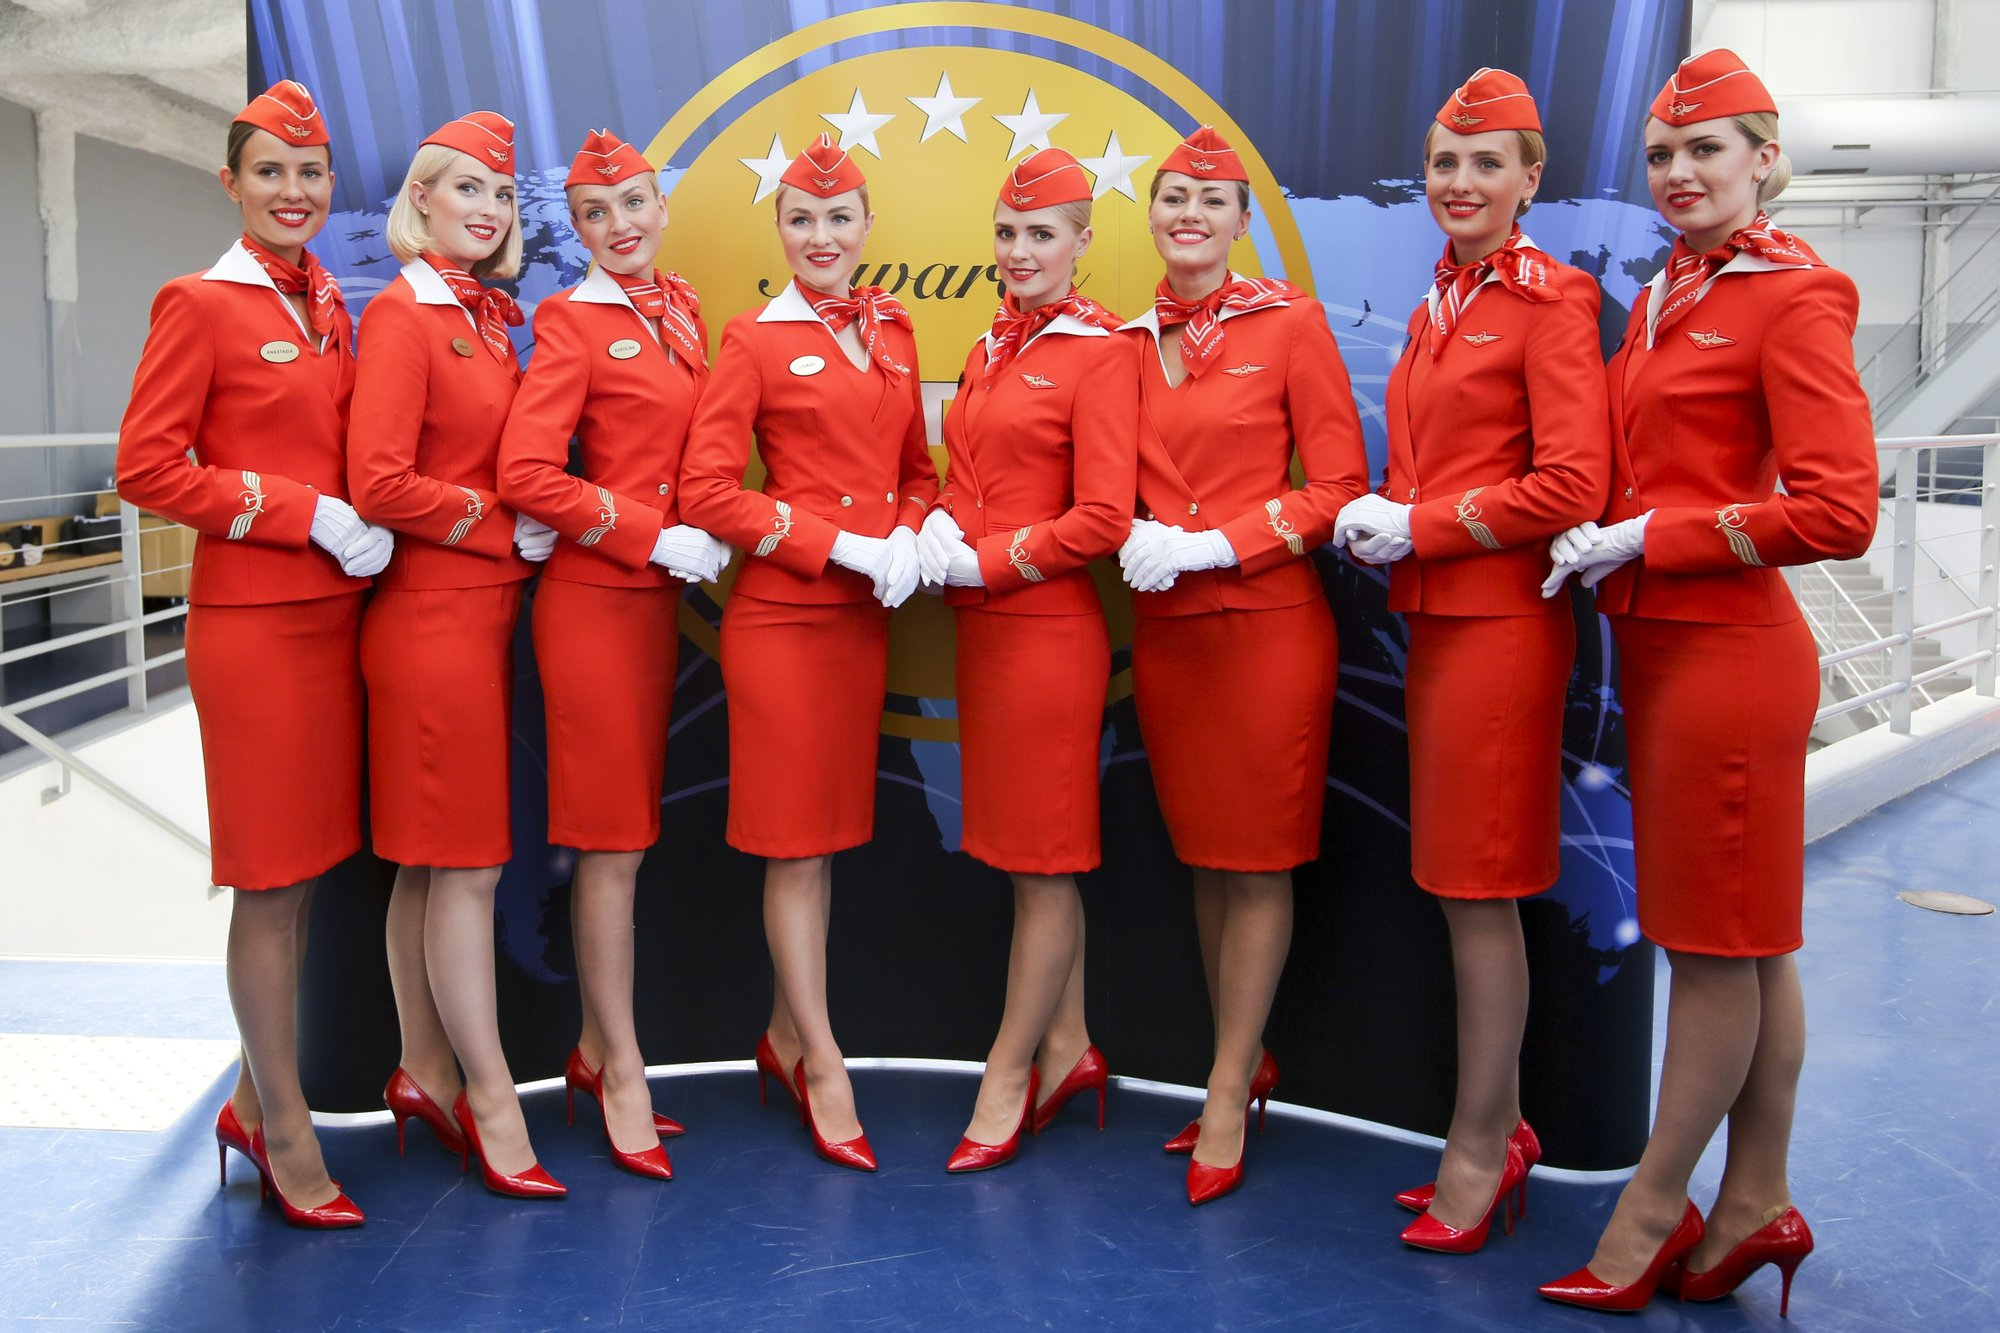 A Very Special Hostess Porn russian flight attendant sues airline for discrimination